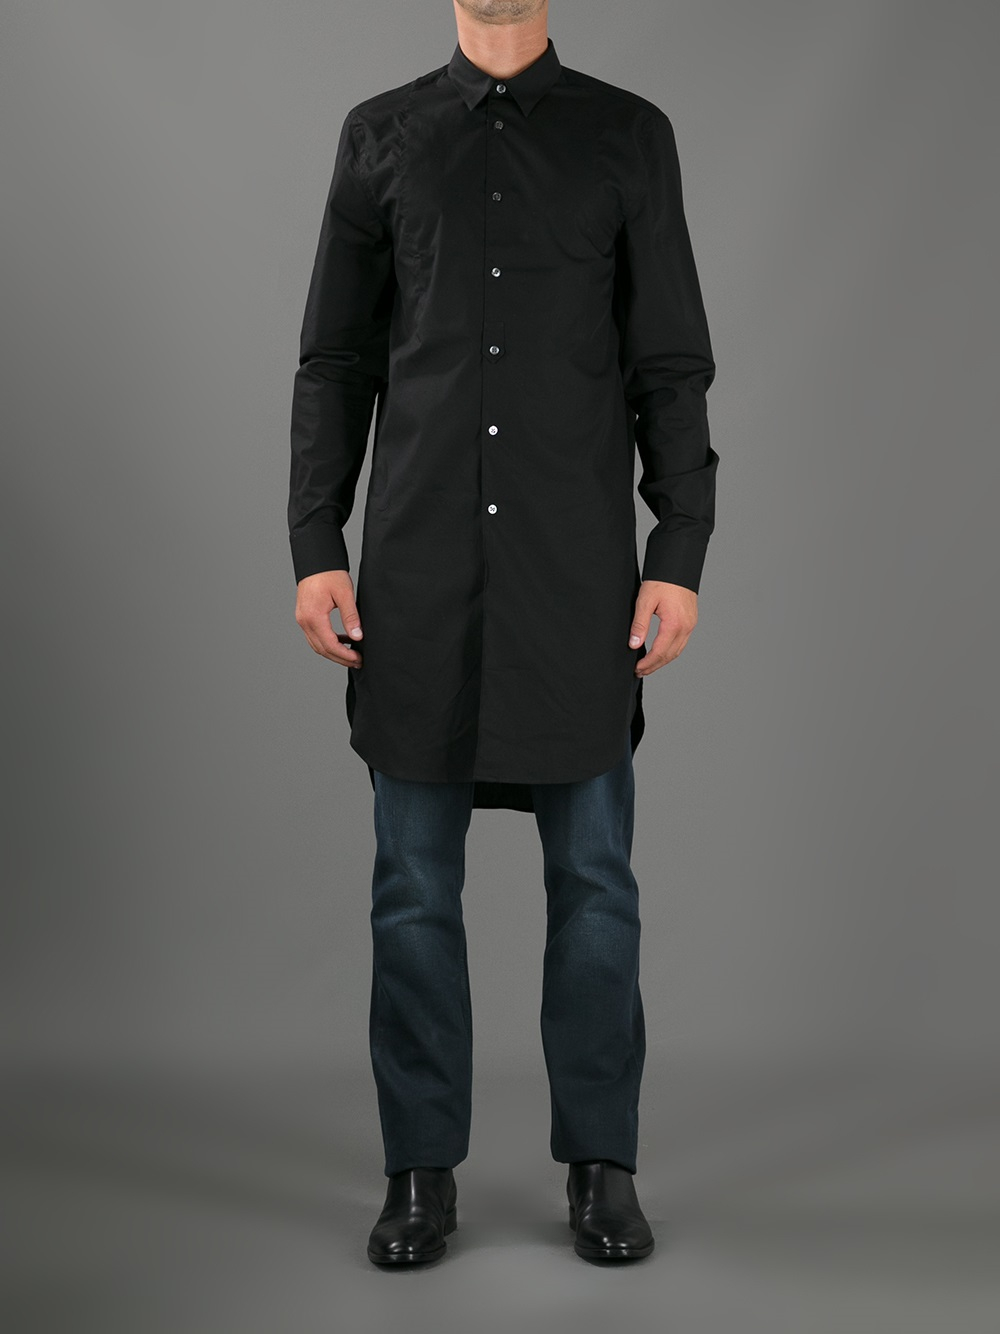 Acne studios jay extra long shirt in black for men lyst for Extra long dress shirts